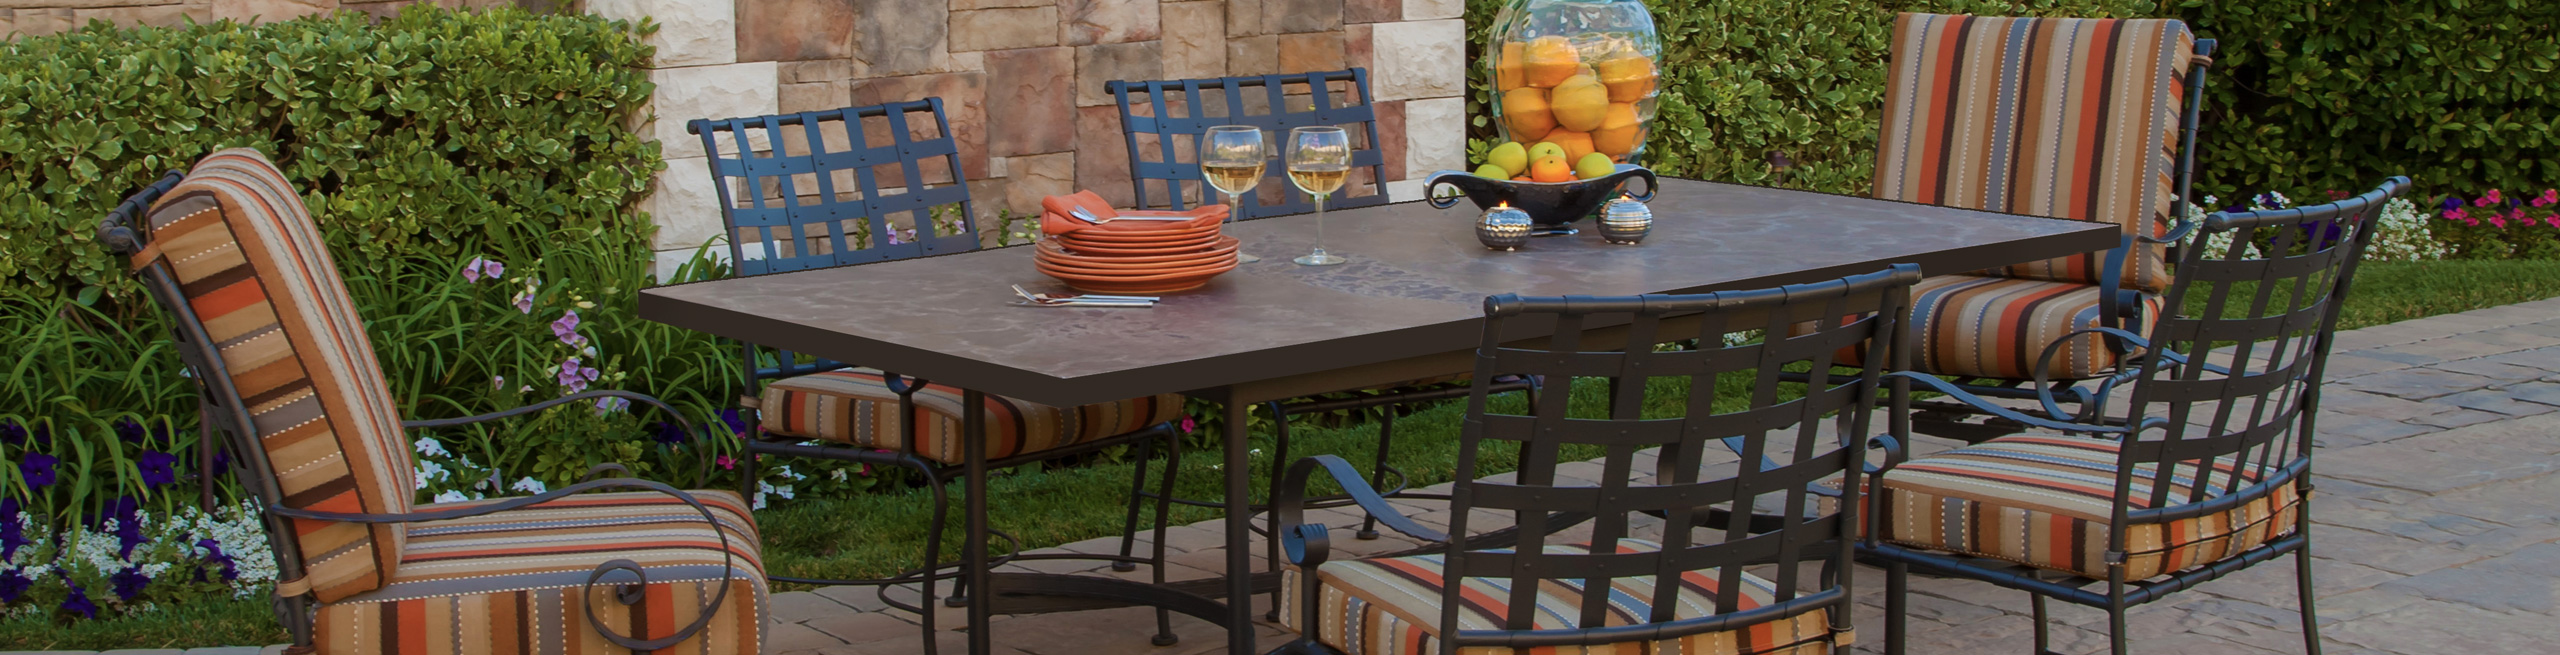 wrought iron patio furniture wrought iron furniture JNXWCWU